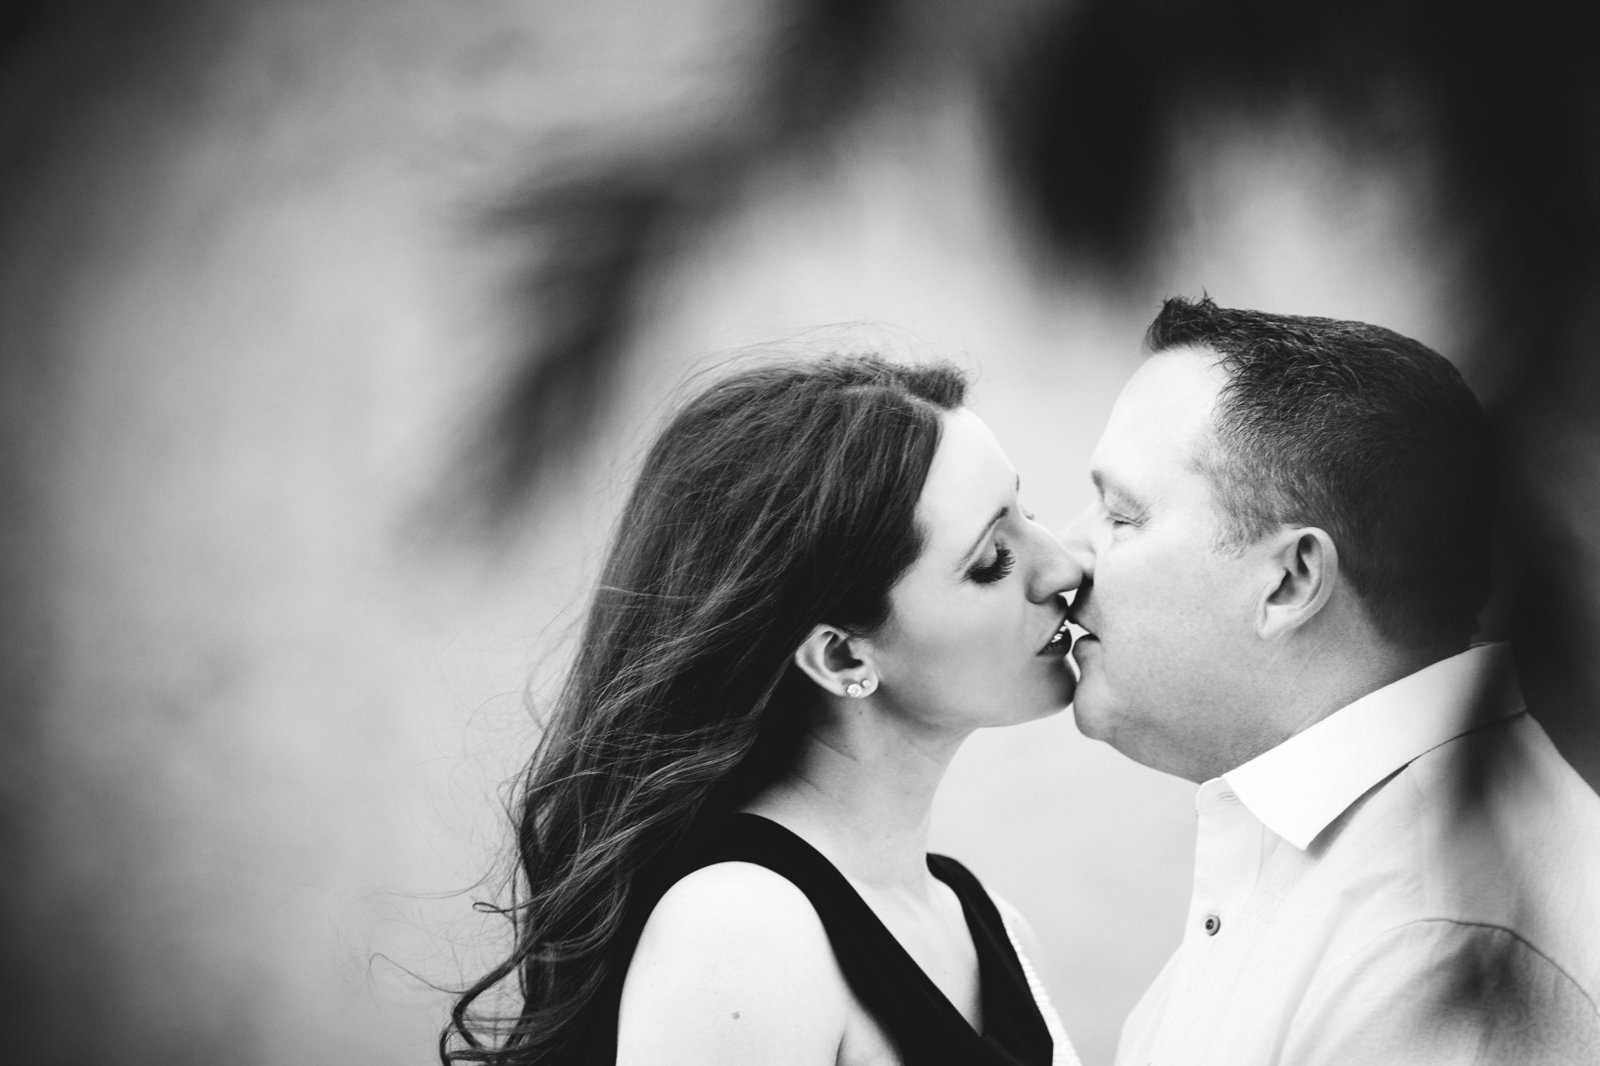 Bride + Groom Portraits Denver Colorado Springs CO Wedding Photographer Genevieve Hansen 018